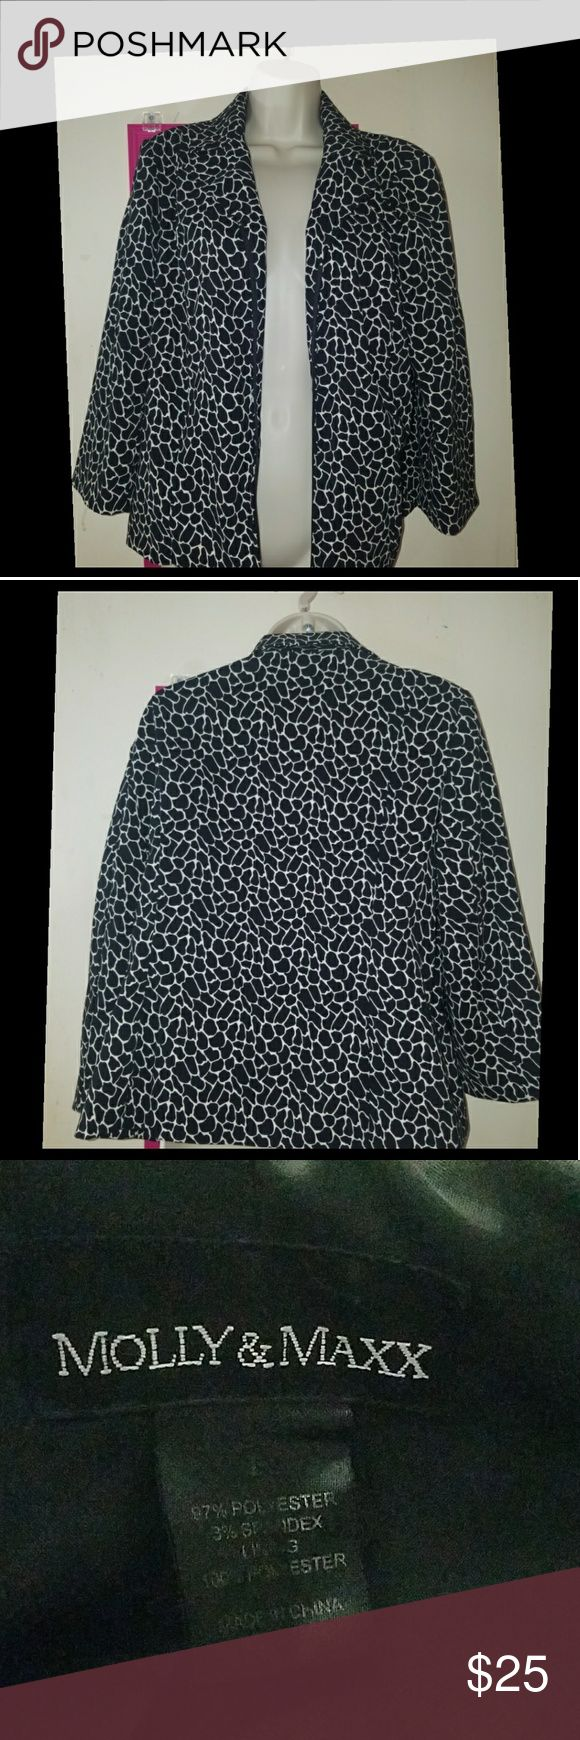 Molly & Maxx Animal Print Zip Up Blazer Cute black and white animal print jacket. Zips up the front. Long sleeves. Shoulder pads. Fully lined. Polyester spandex blend shell. Lining is polyester. Size large. Bust 44 inches. Length 23 inches. EUC. molly & maxx Jackets & Coats Blazers